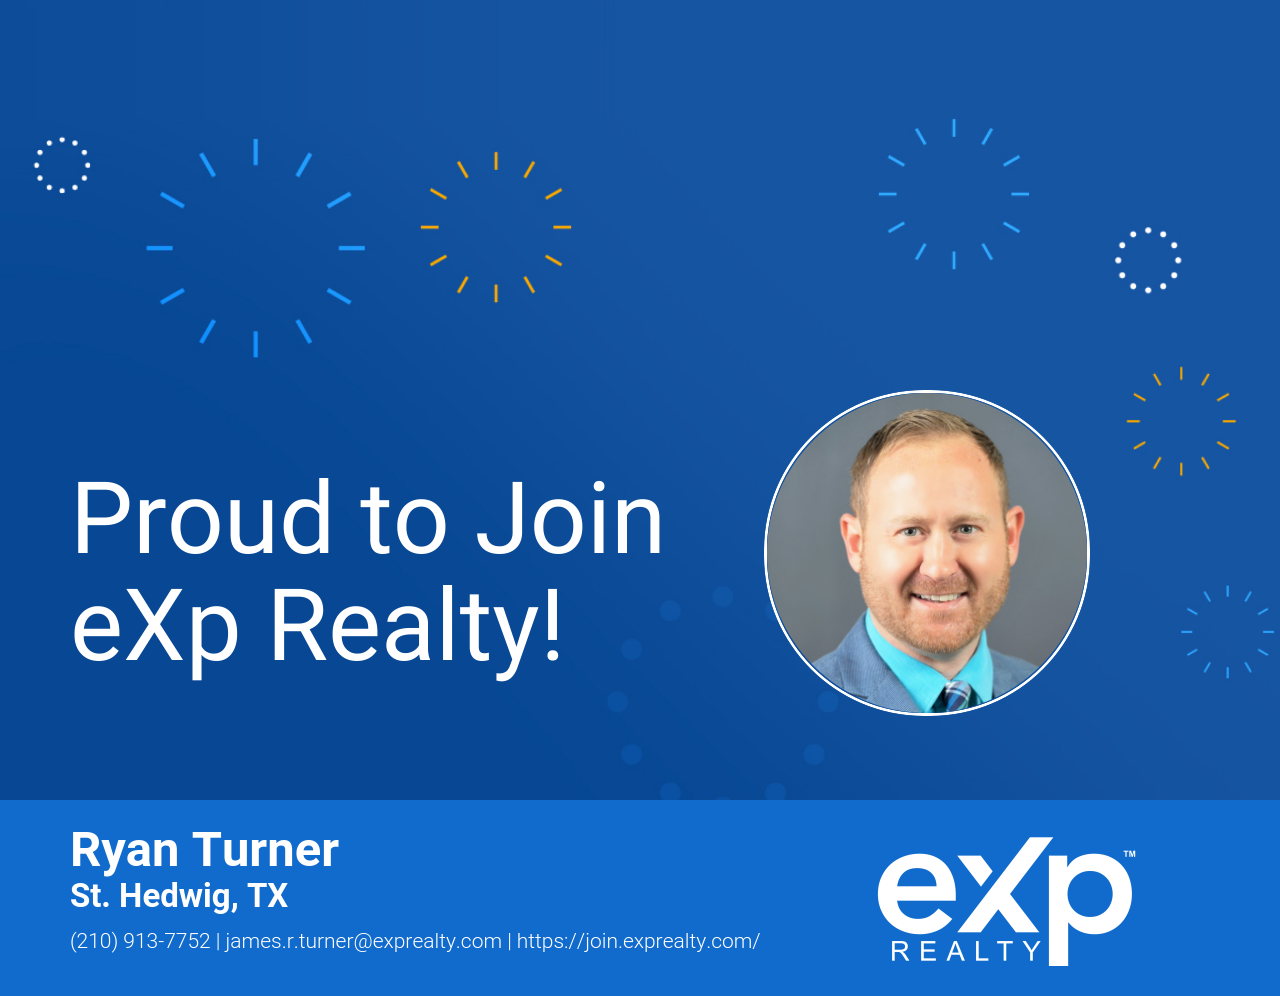 Ryan Turner Joined eXp Realty!